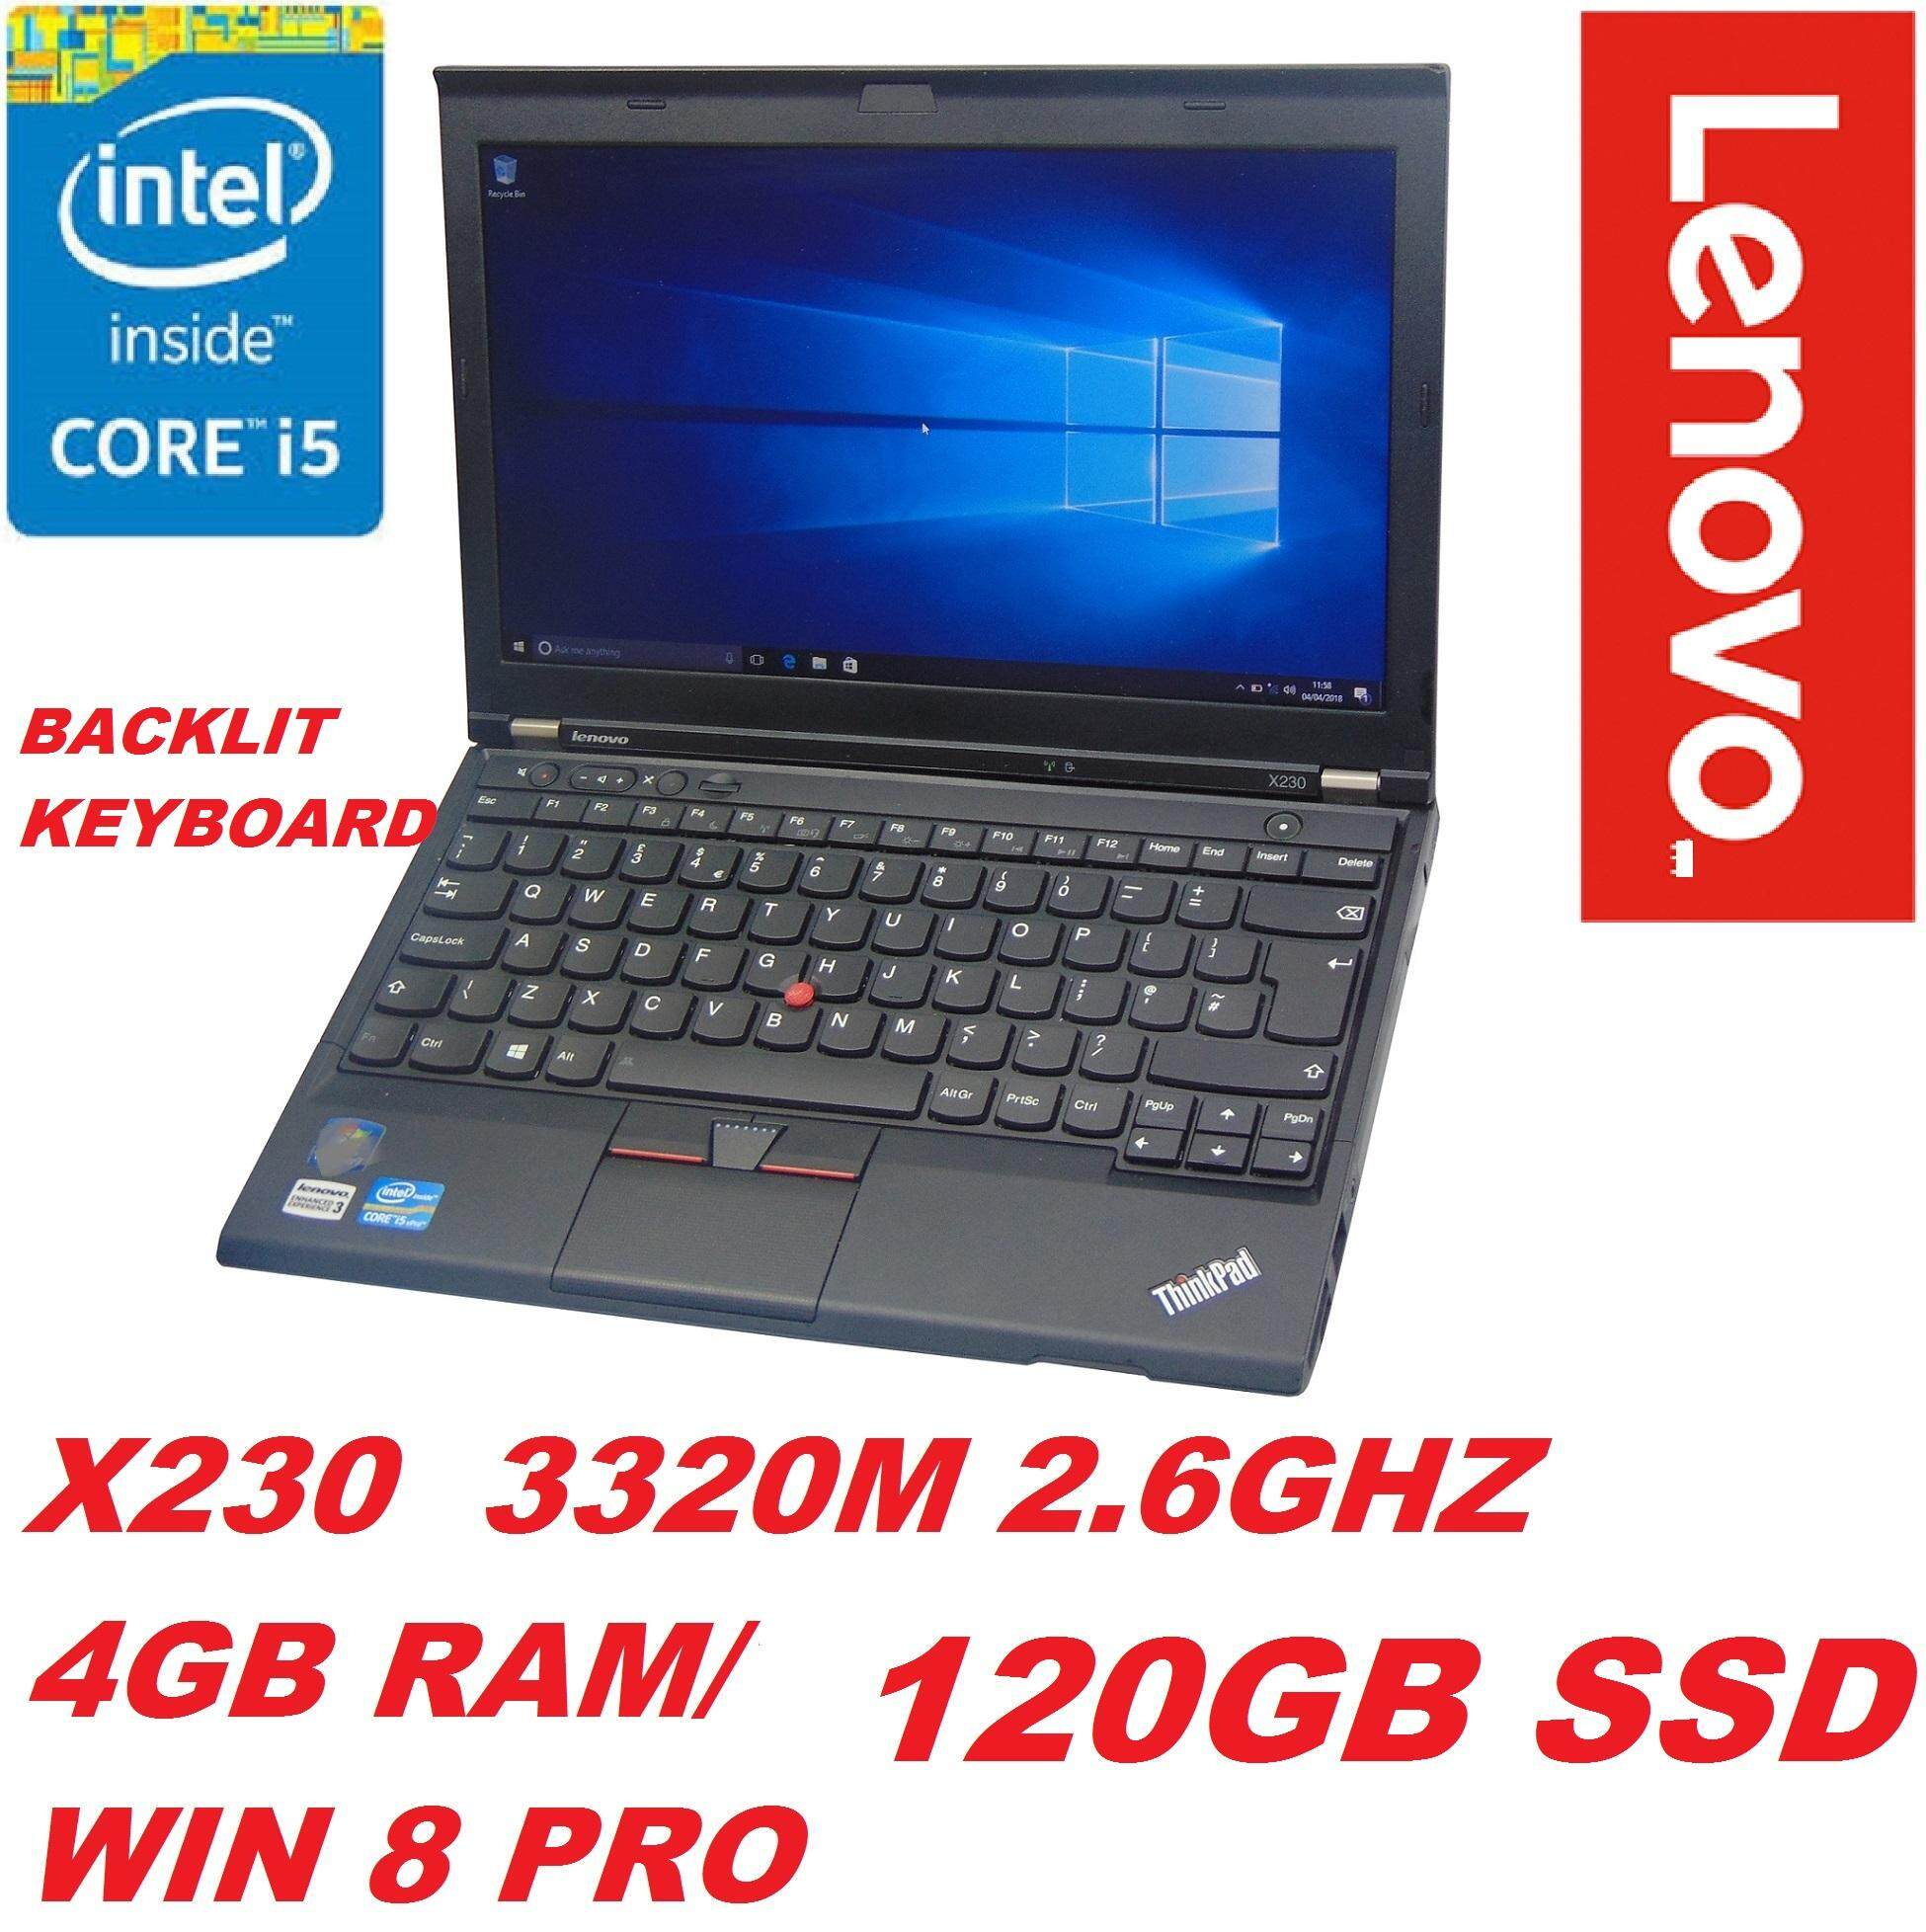 LENOVO THINKPAD X230 INTEL CORE i5-3320M 2.6GHZ 3RD GEN CPU/4GB DDR3 RAM/120GB SSD /INTEL HD GRAPHIC CARD/12.5 ANTIGLARE LED/BUILT IN WEBCAM/WIFI/LAN CARD/WIN 8 Malaysia